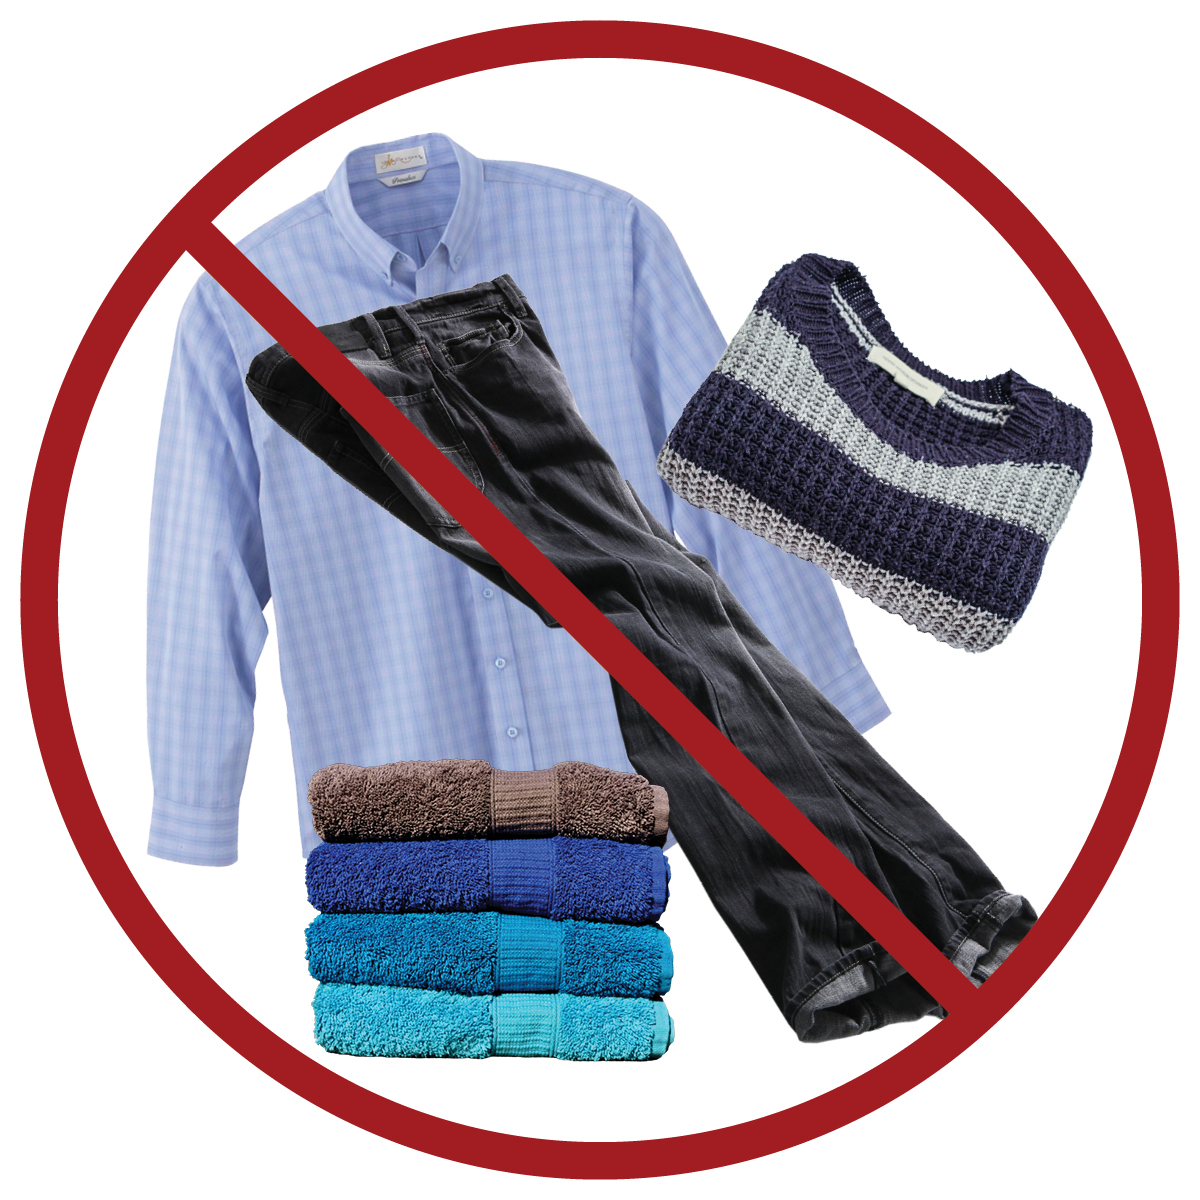 clothing and textiles: keep out of blue recycling cart